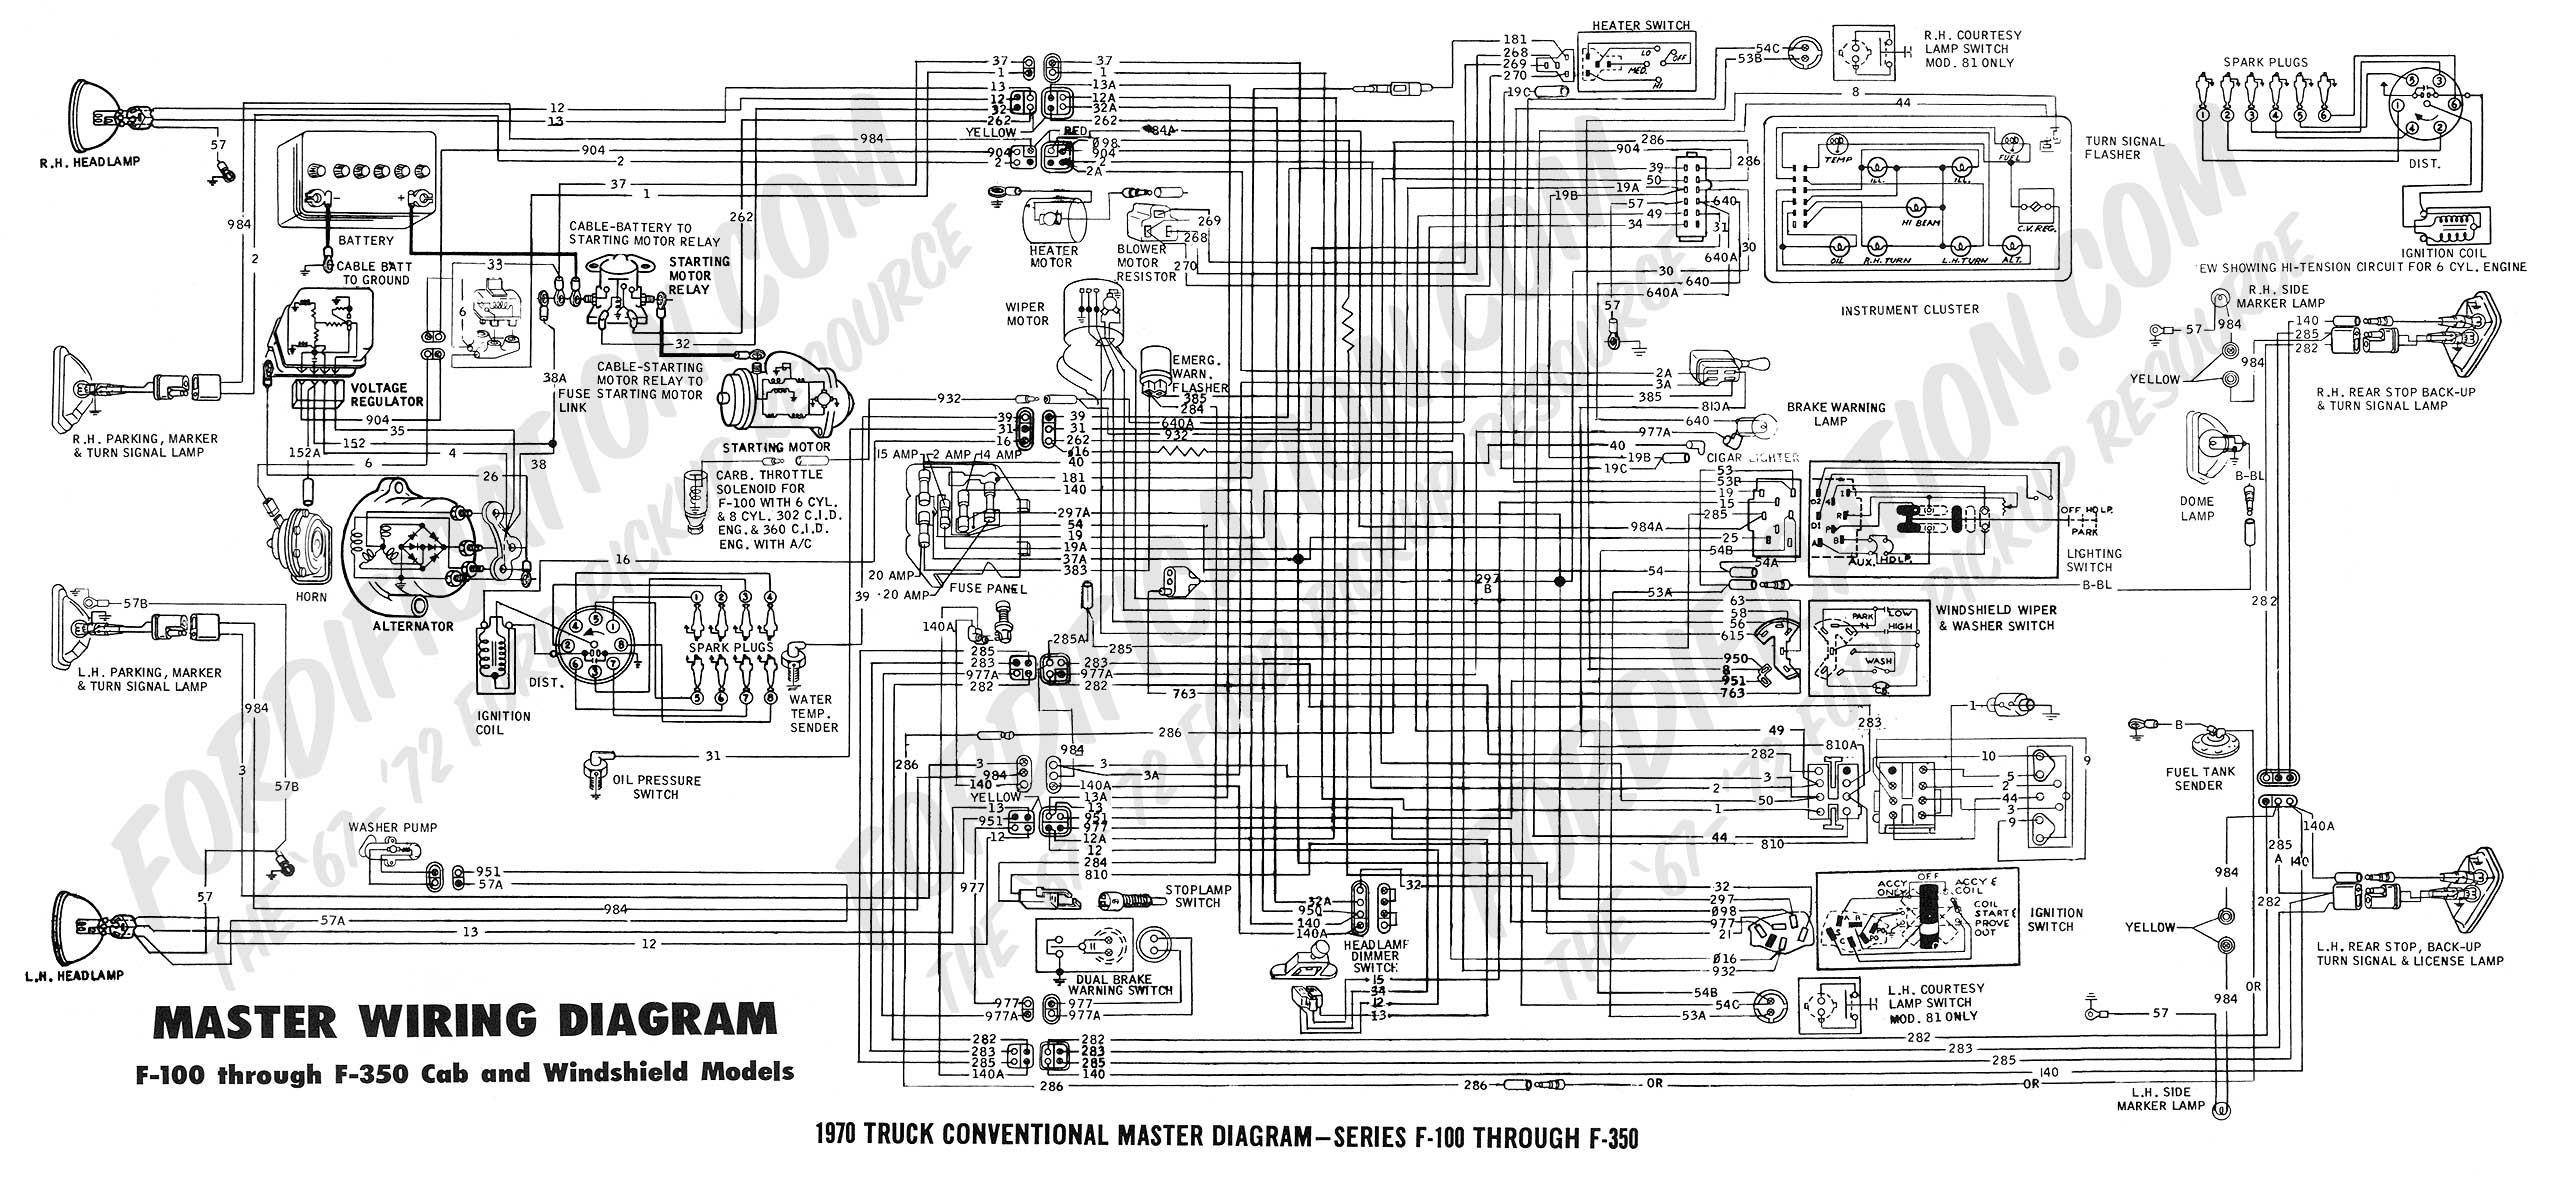 wiring diagram 70_master ford truck technical drawings and schematics section h wiring ford f250 wiring diagram at nearapp.co